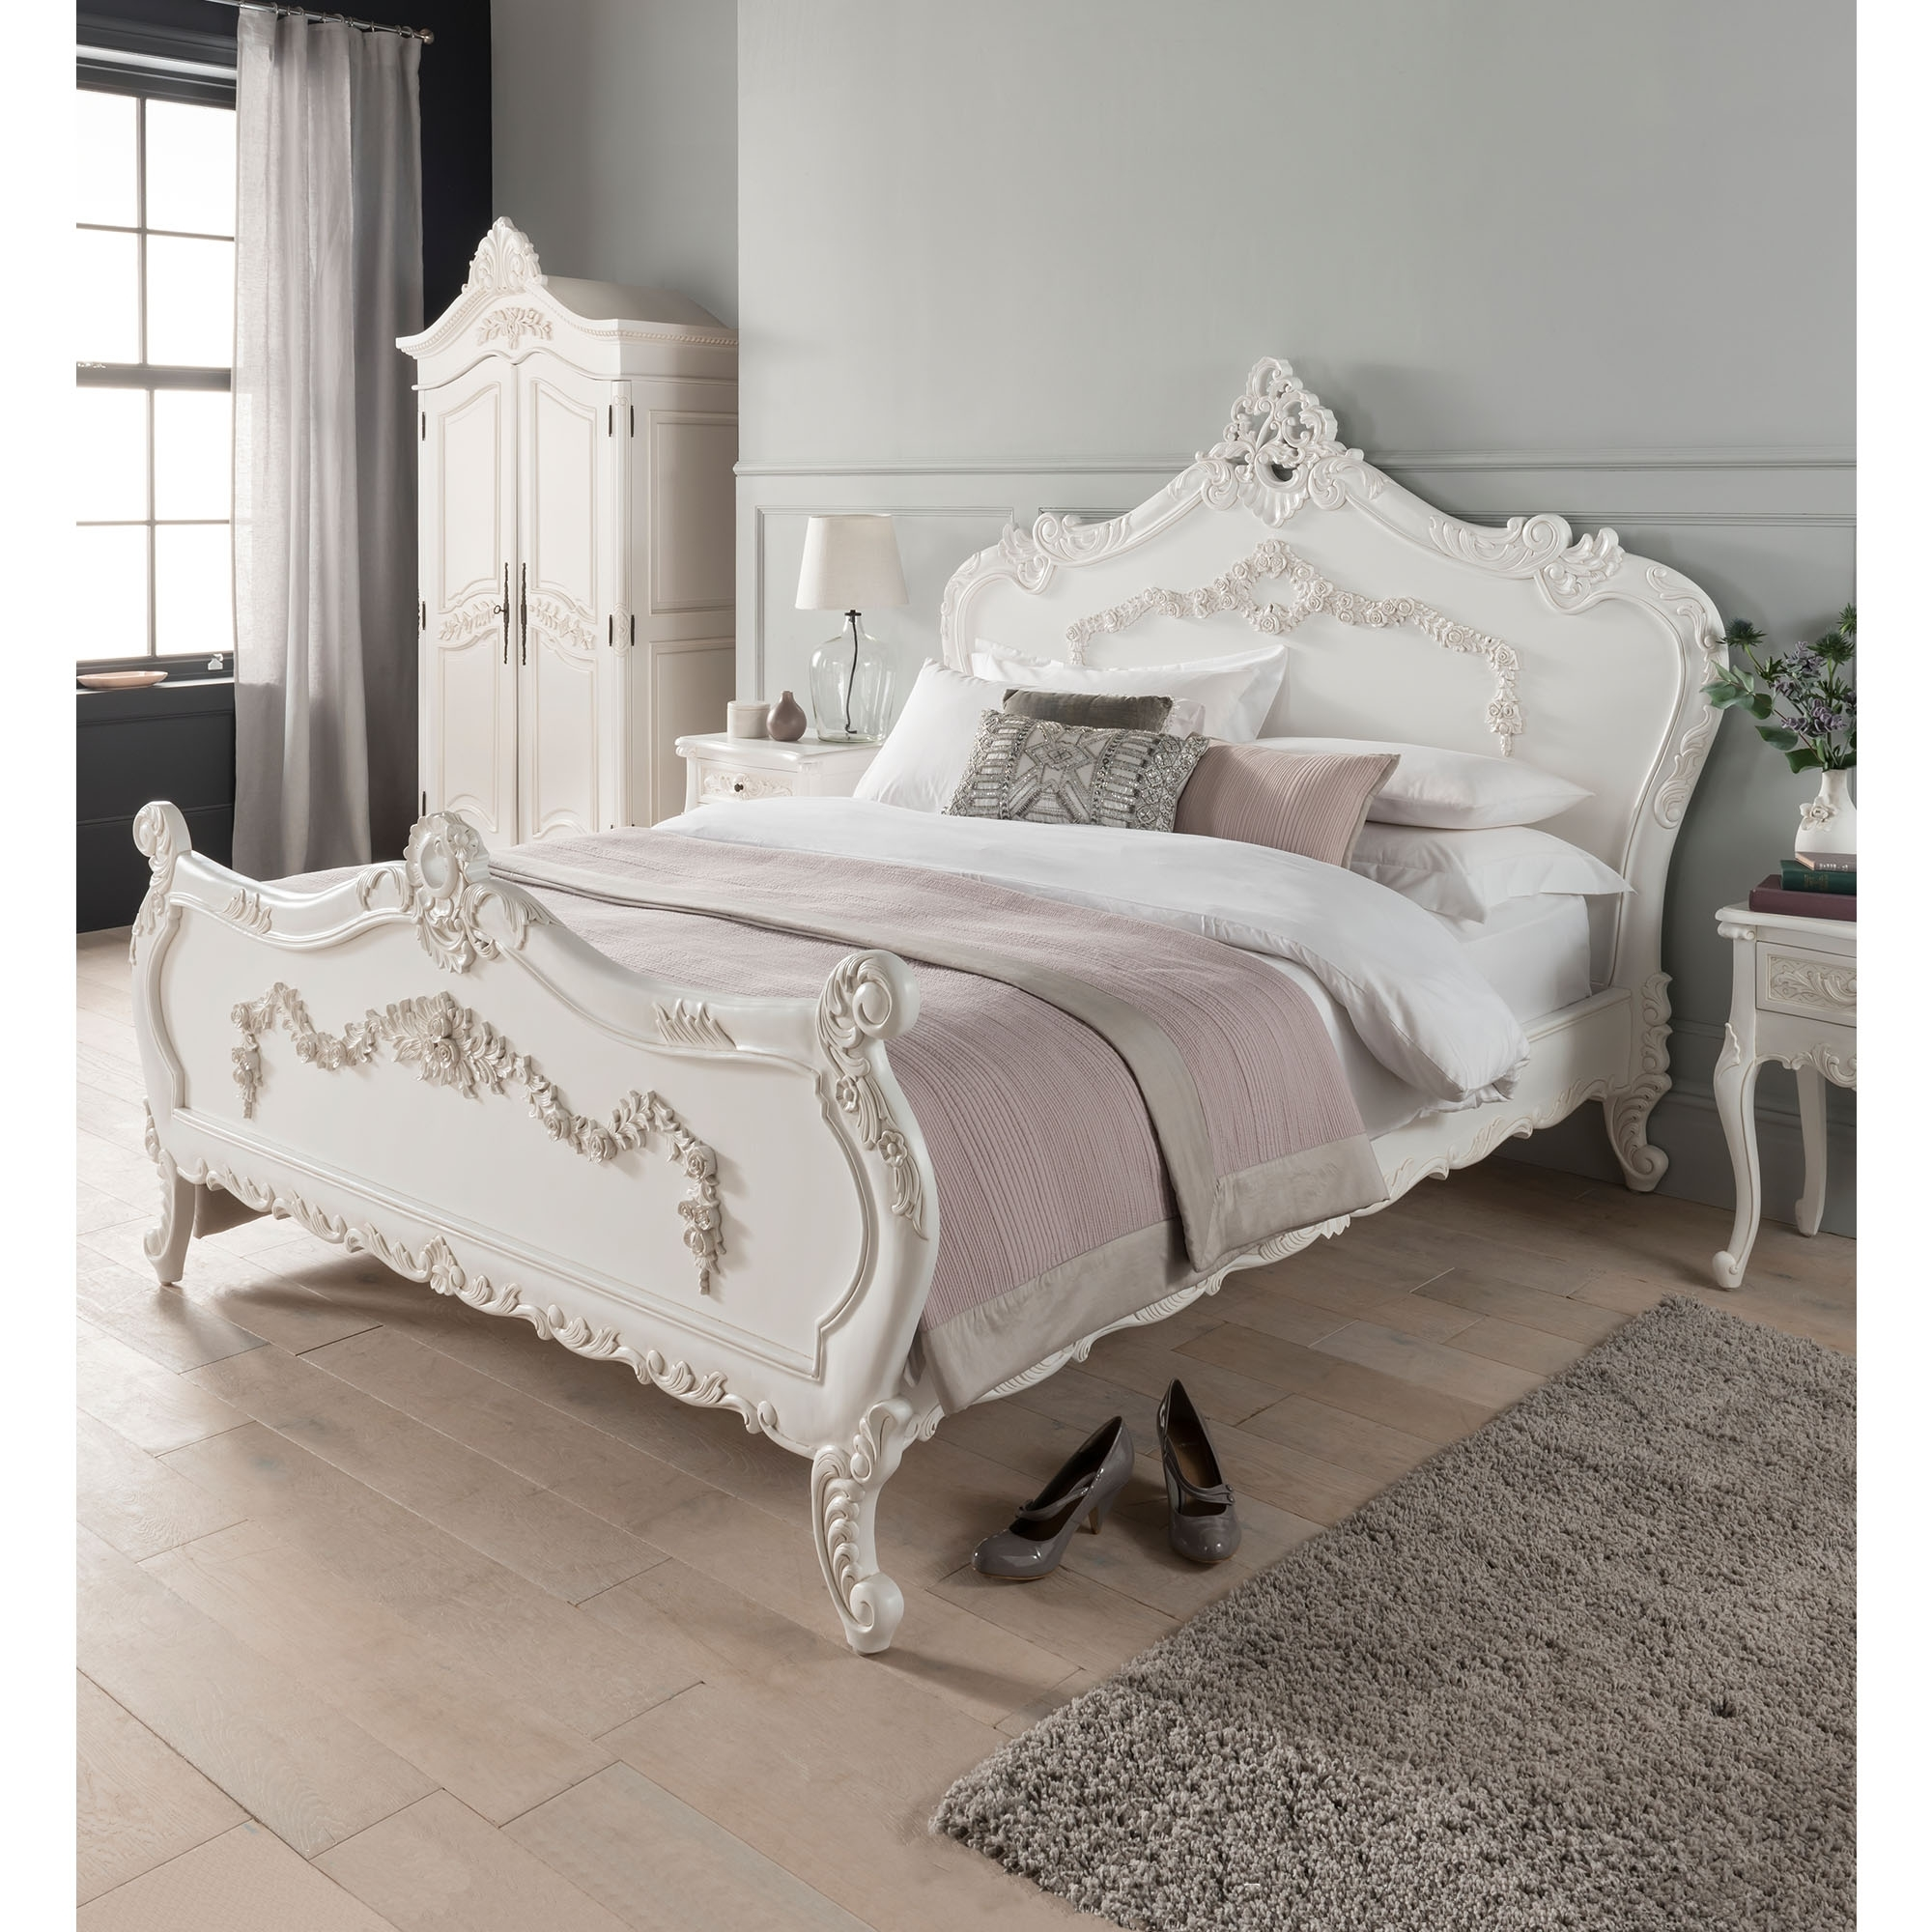 Picture of: Antique French Style Bed Shabby Chic Furniture Available Online Now